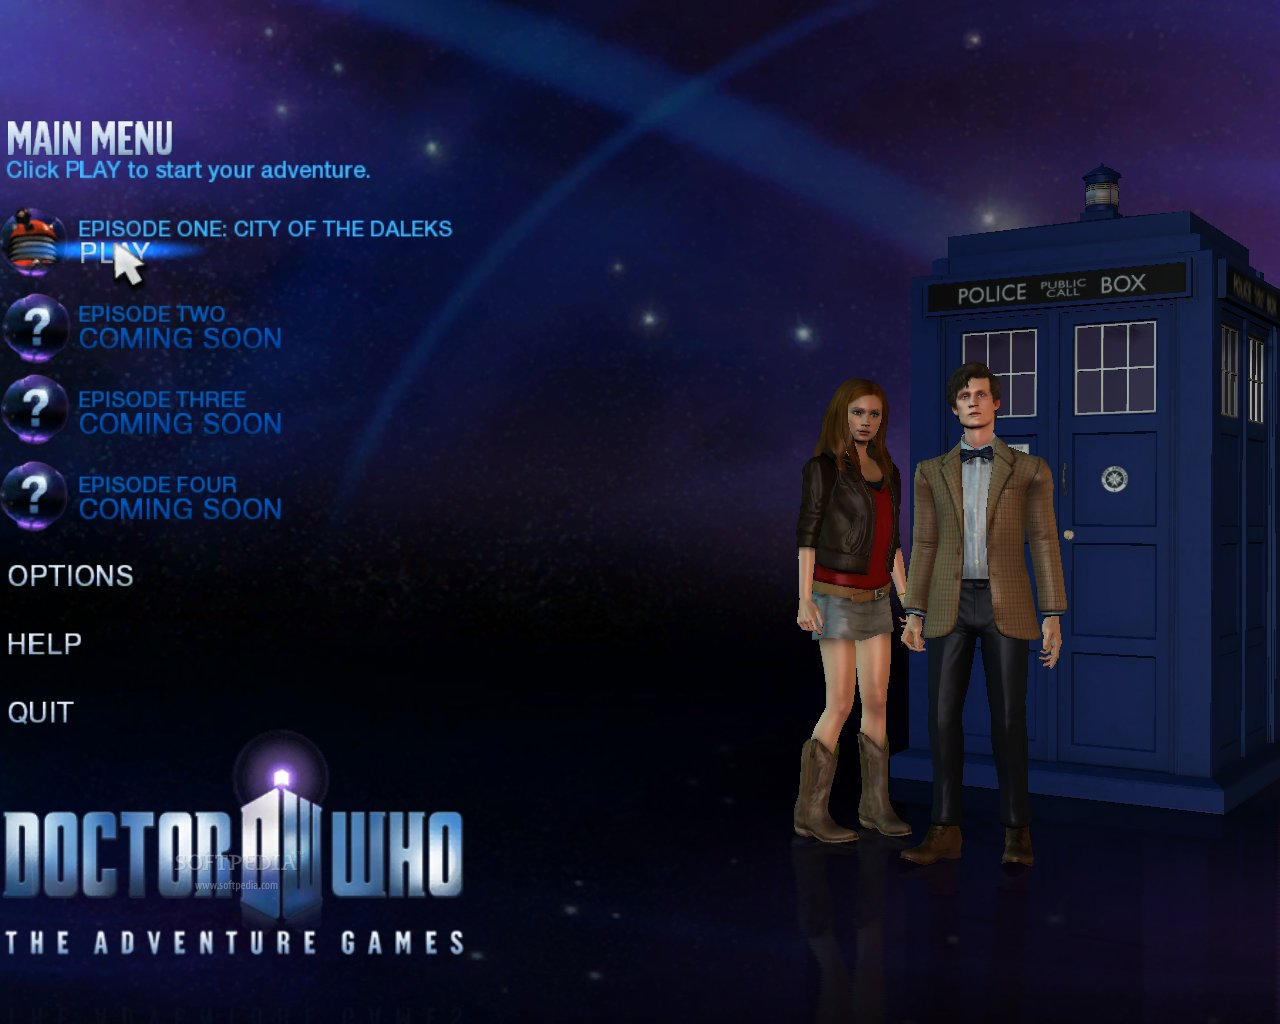 Doctor who adventure games